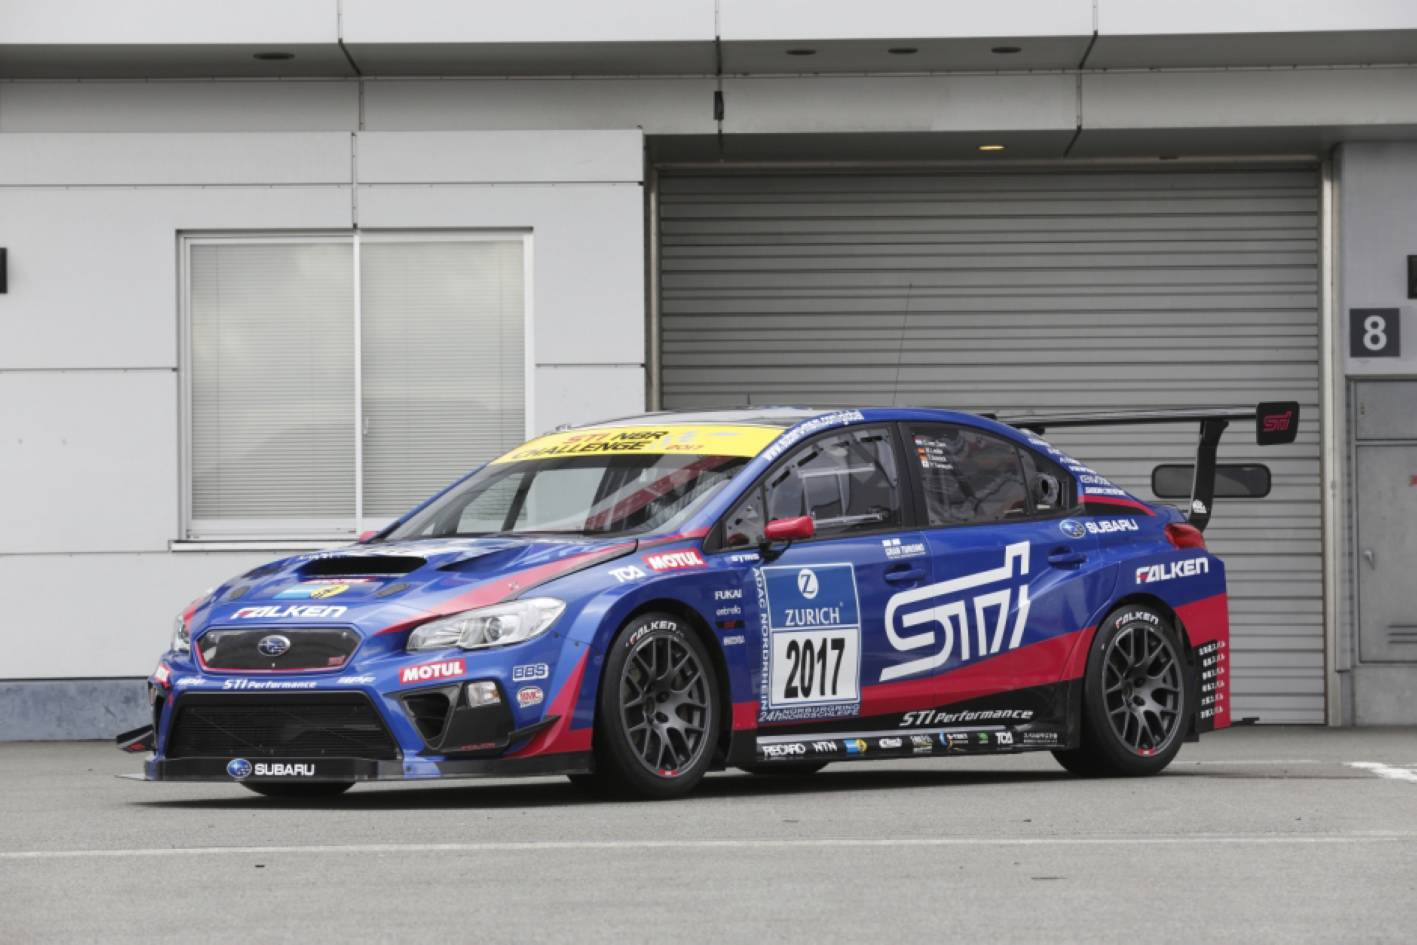 subaru wrx sti aiming for third n rburgring 24h race victory. Black Bedroom Furniture Sets. Home Design Ideas